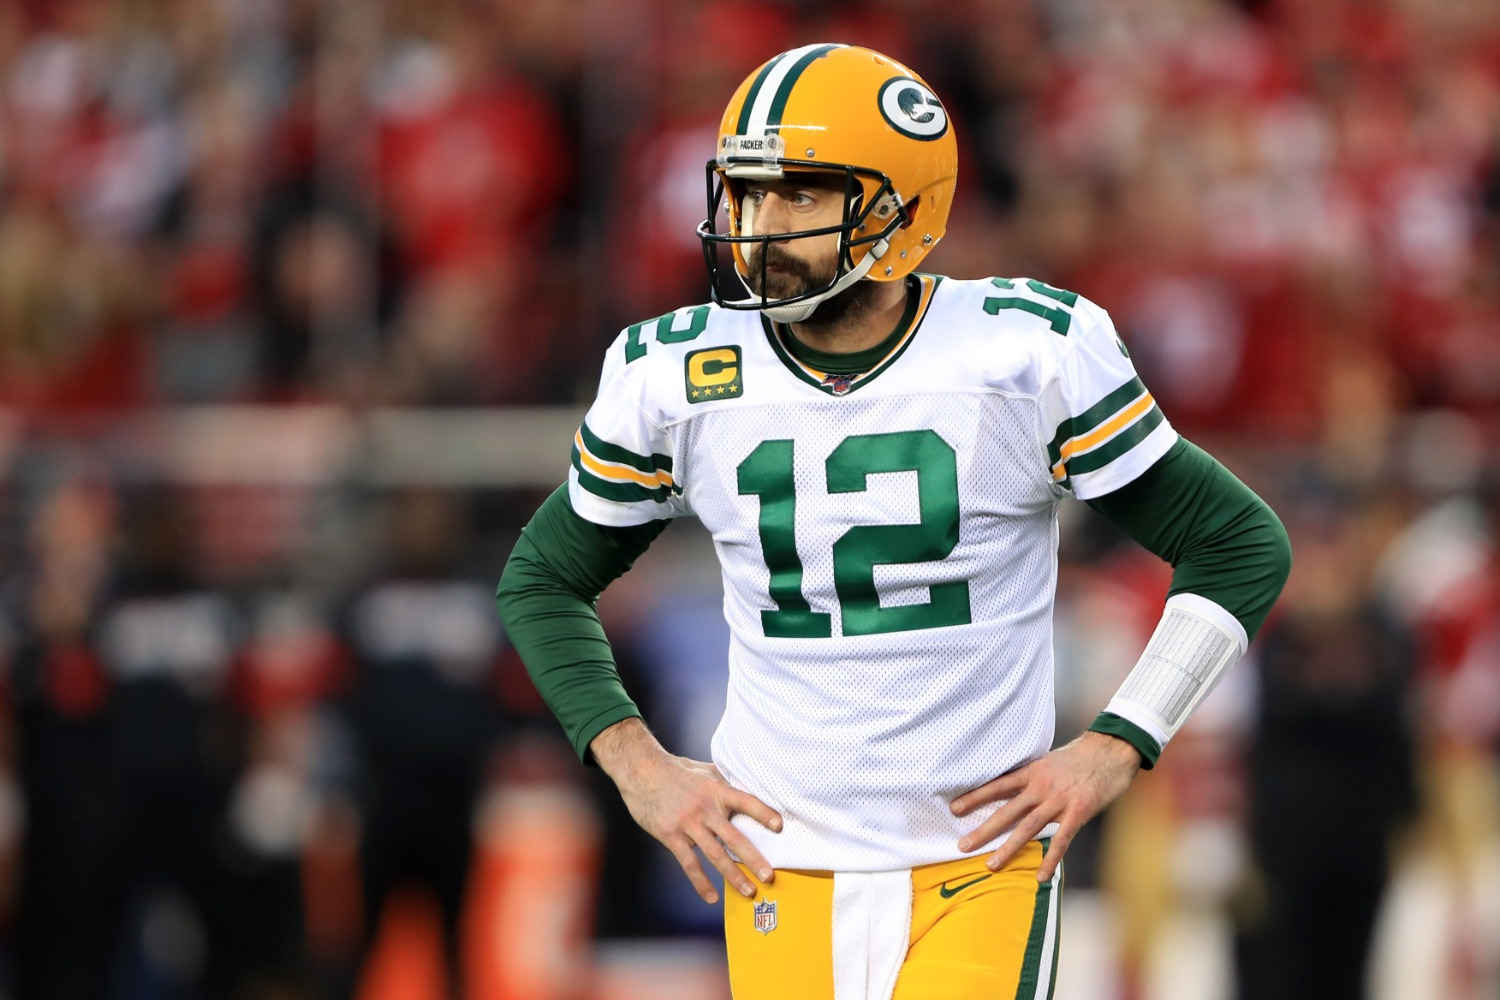 Aaron Rodgers has led the Packers to just one Super Bowl appearance.